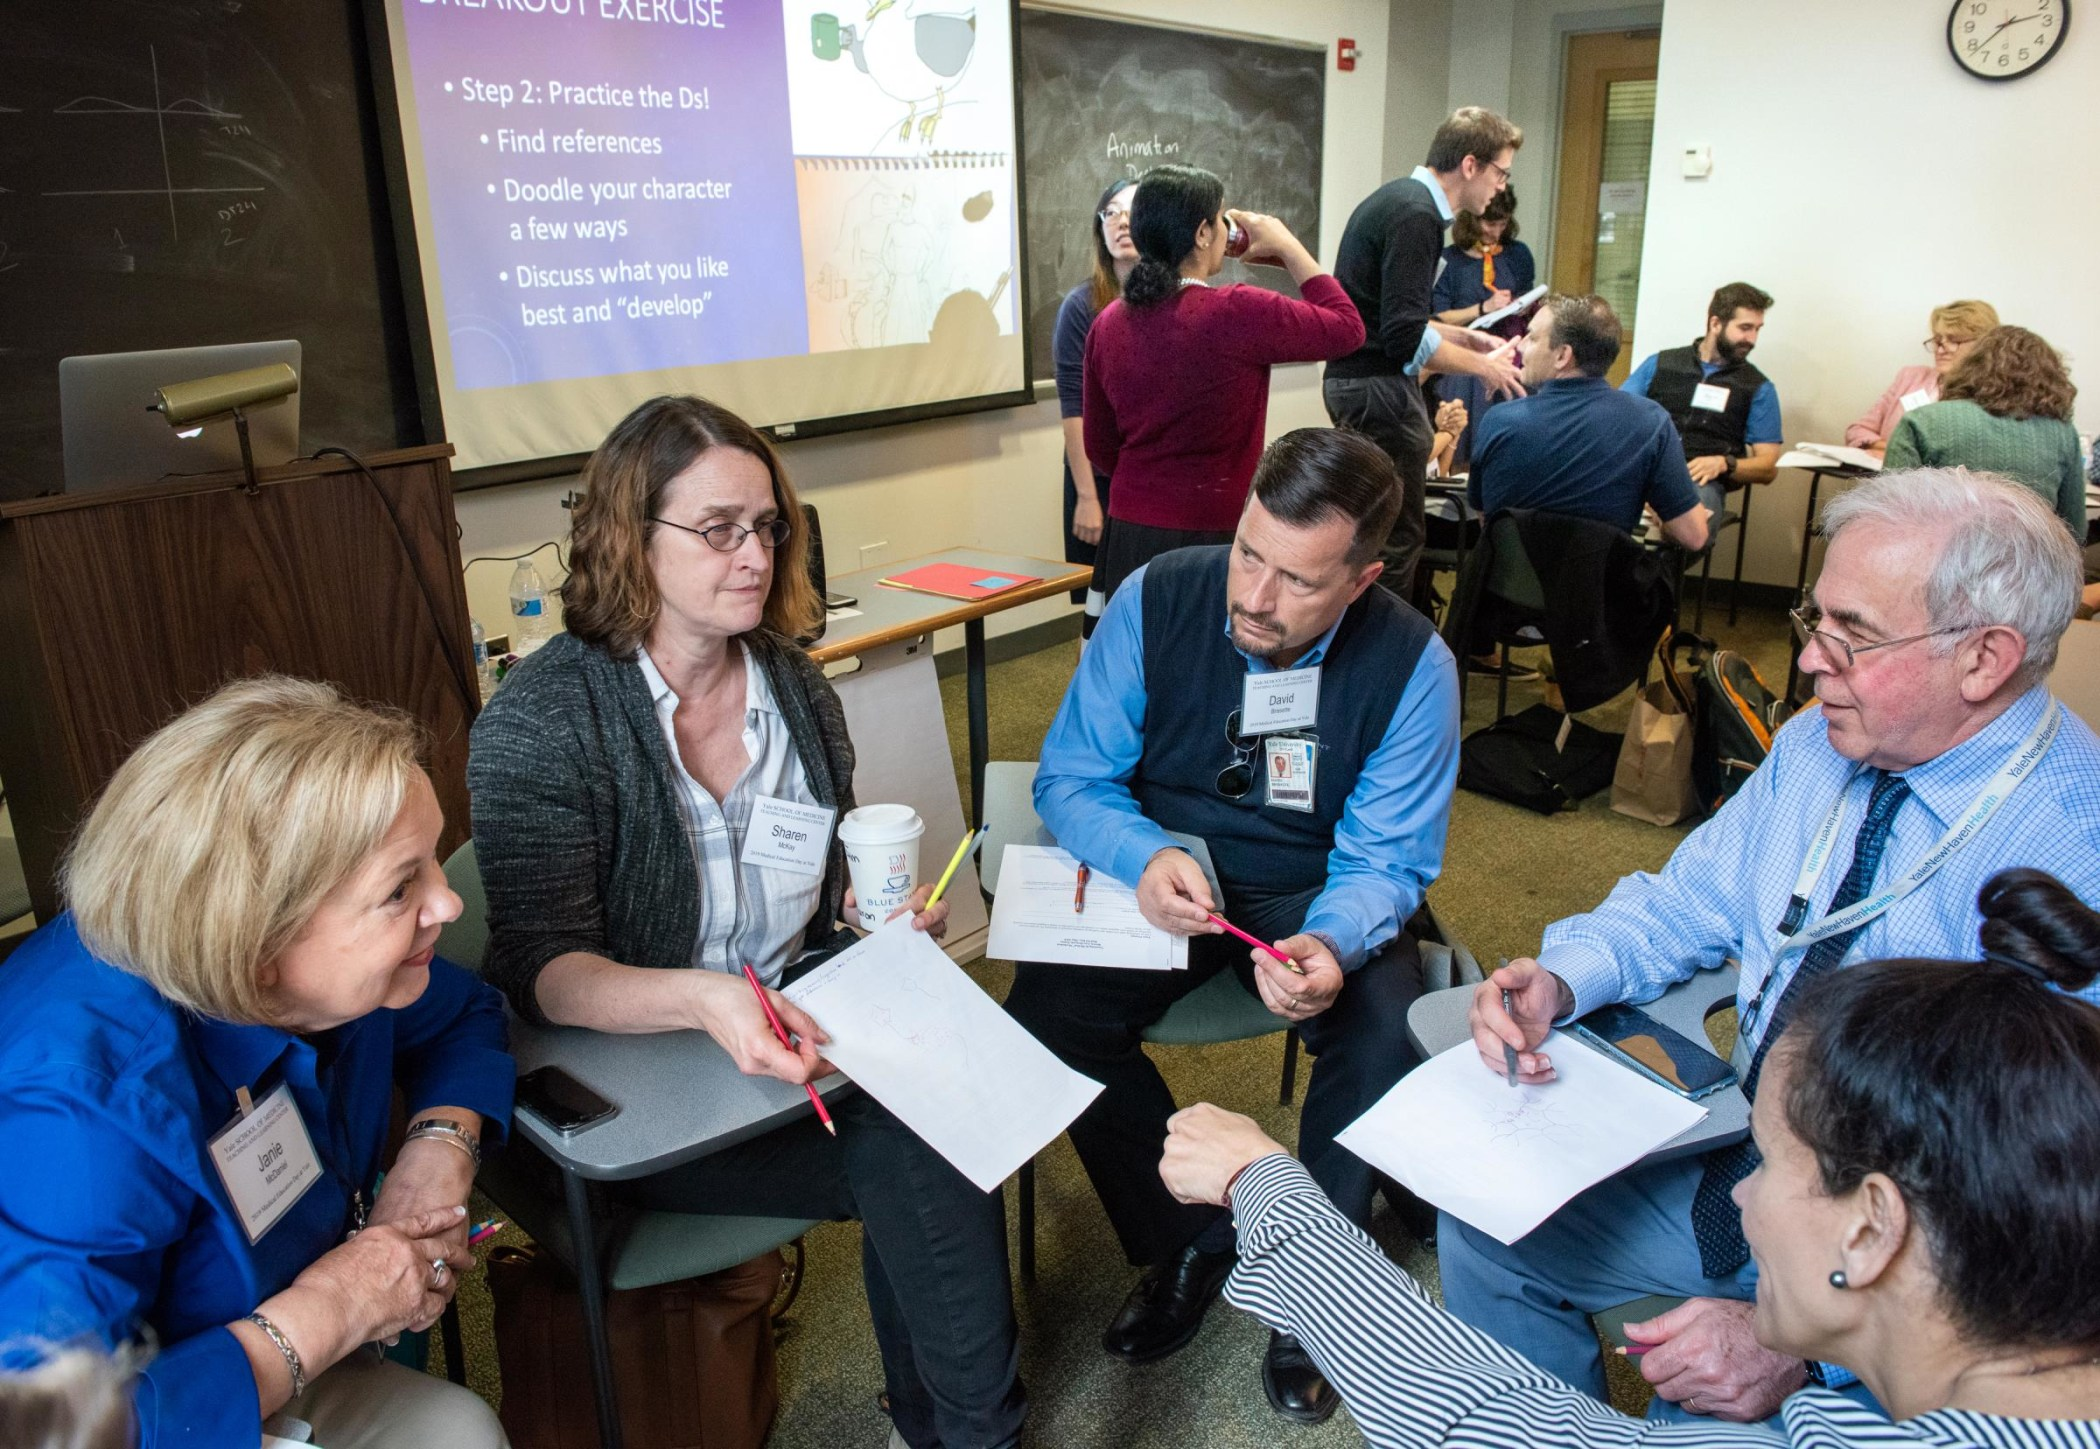 Workshop participants conversing during a small-group discussion